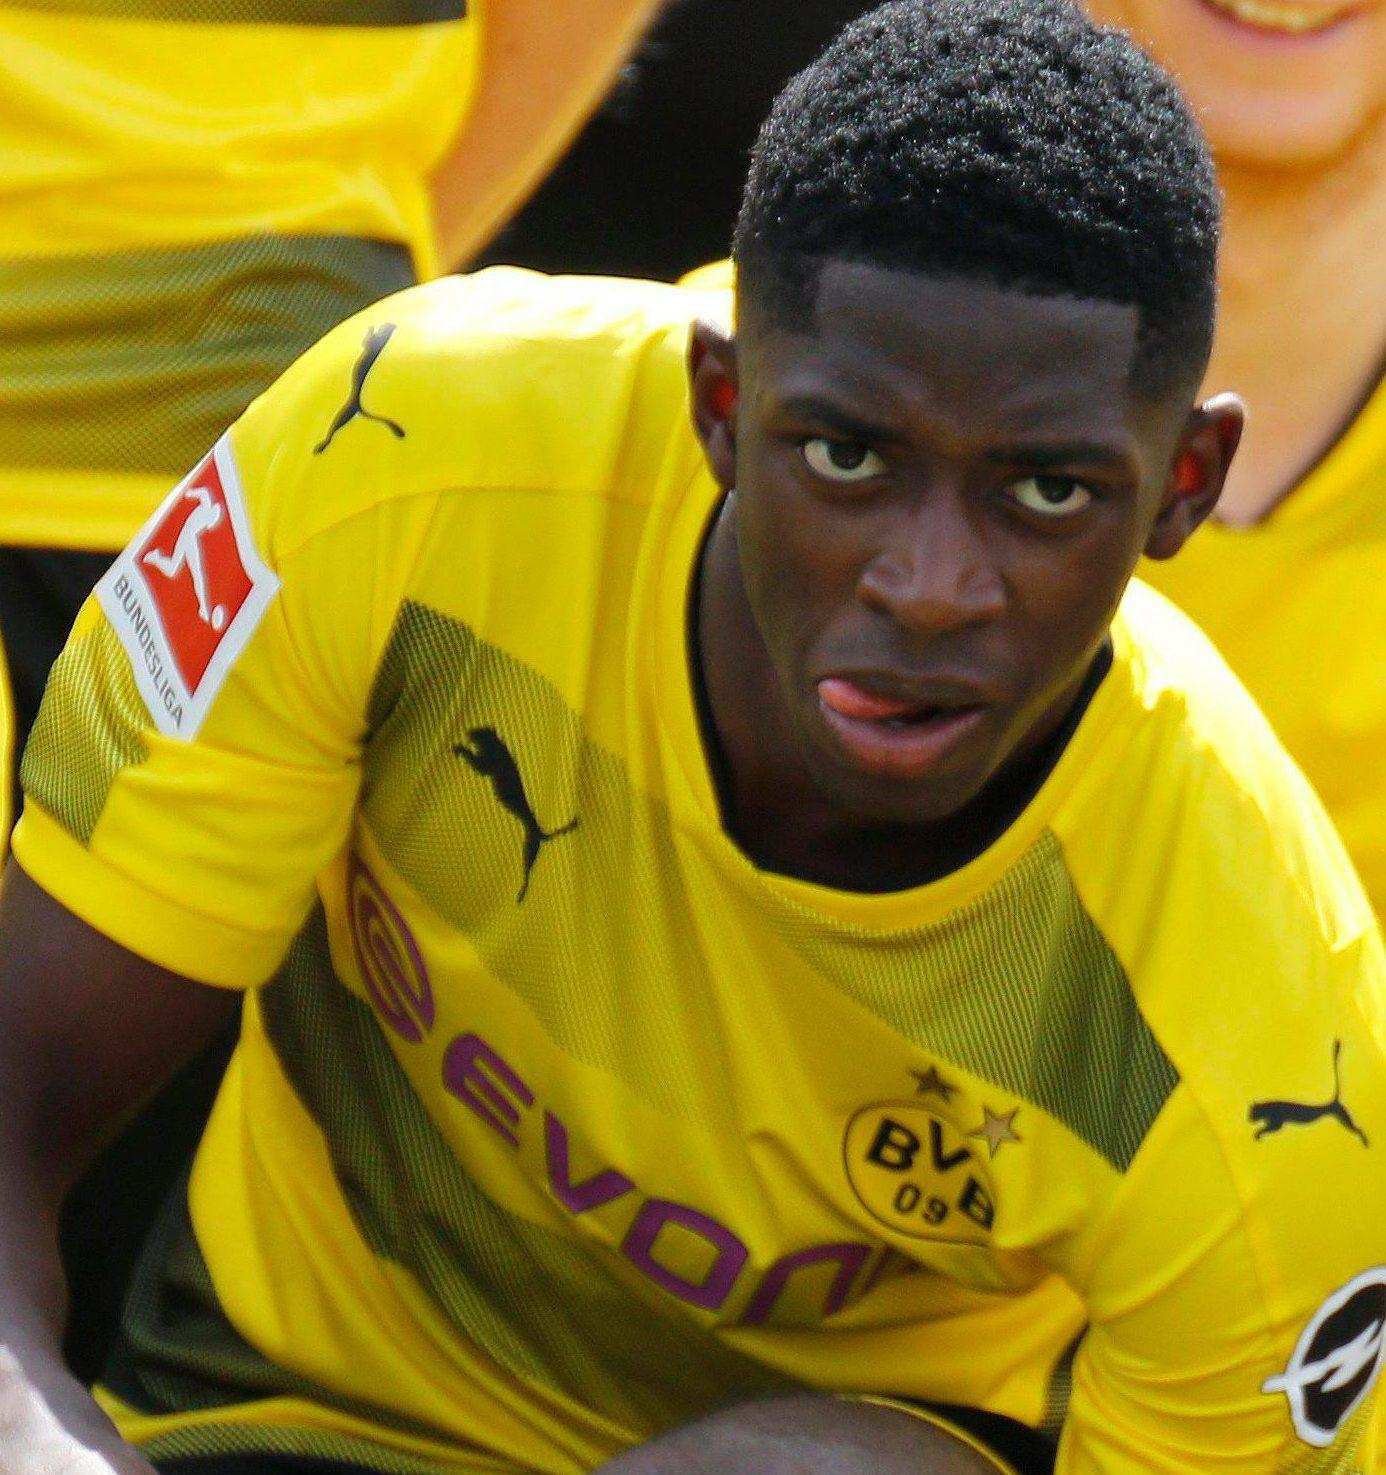 Ousmane Dembele trashes Jurgen Klopp s house before fleeing to France